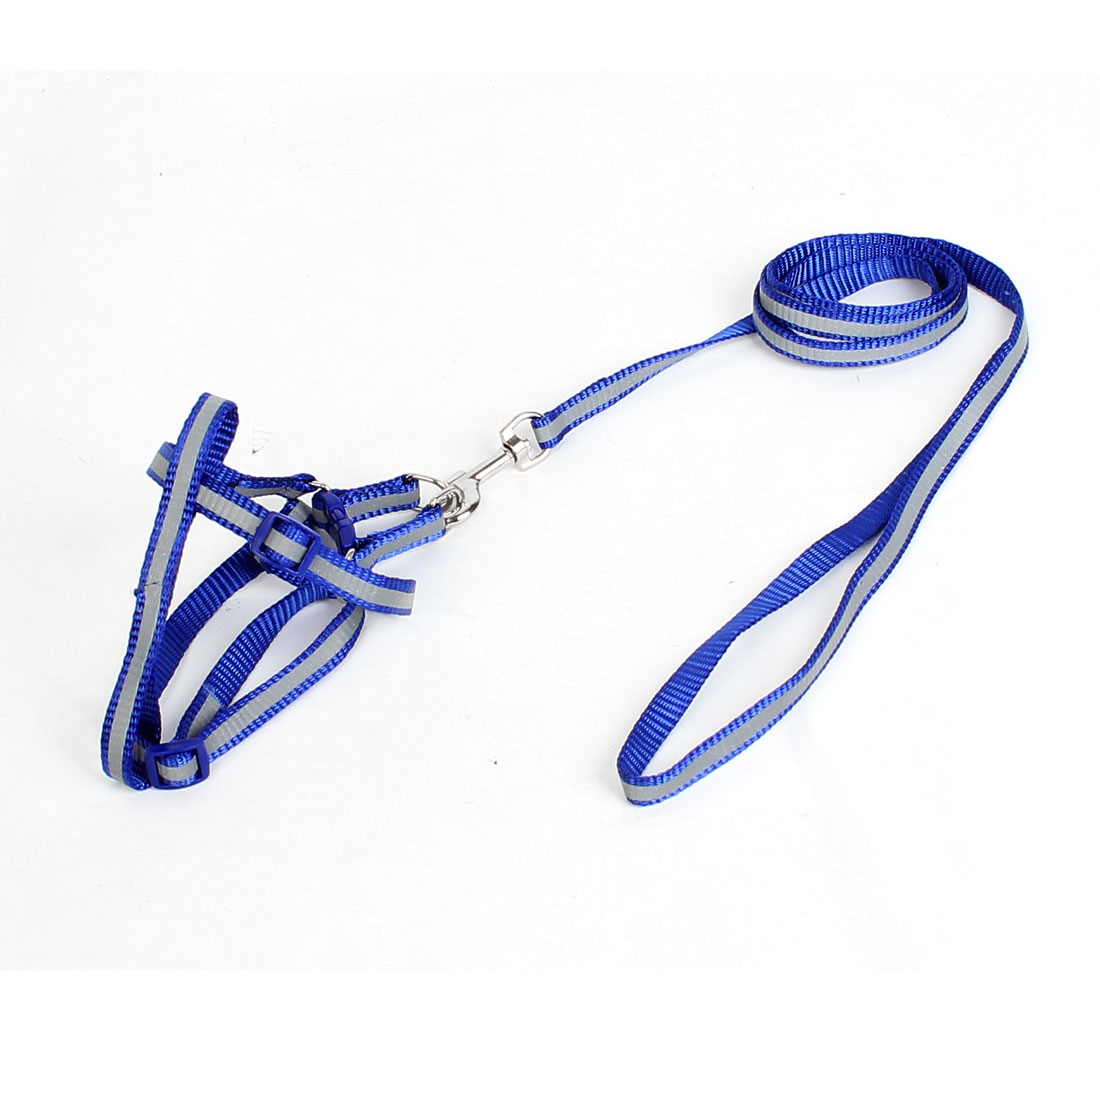 Trigger Hook Release Buckle Night Safety Reflective Pet Dog Yorkie Harness Halter Leash Blue